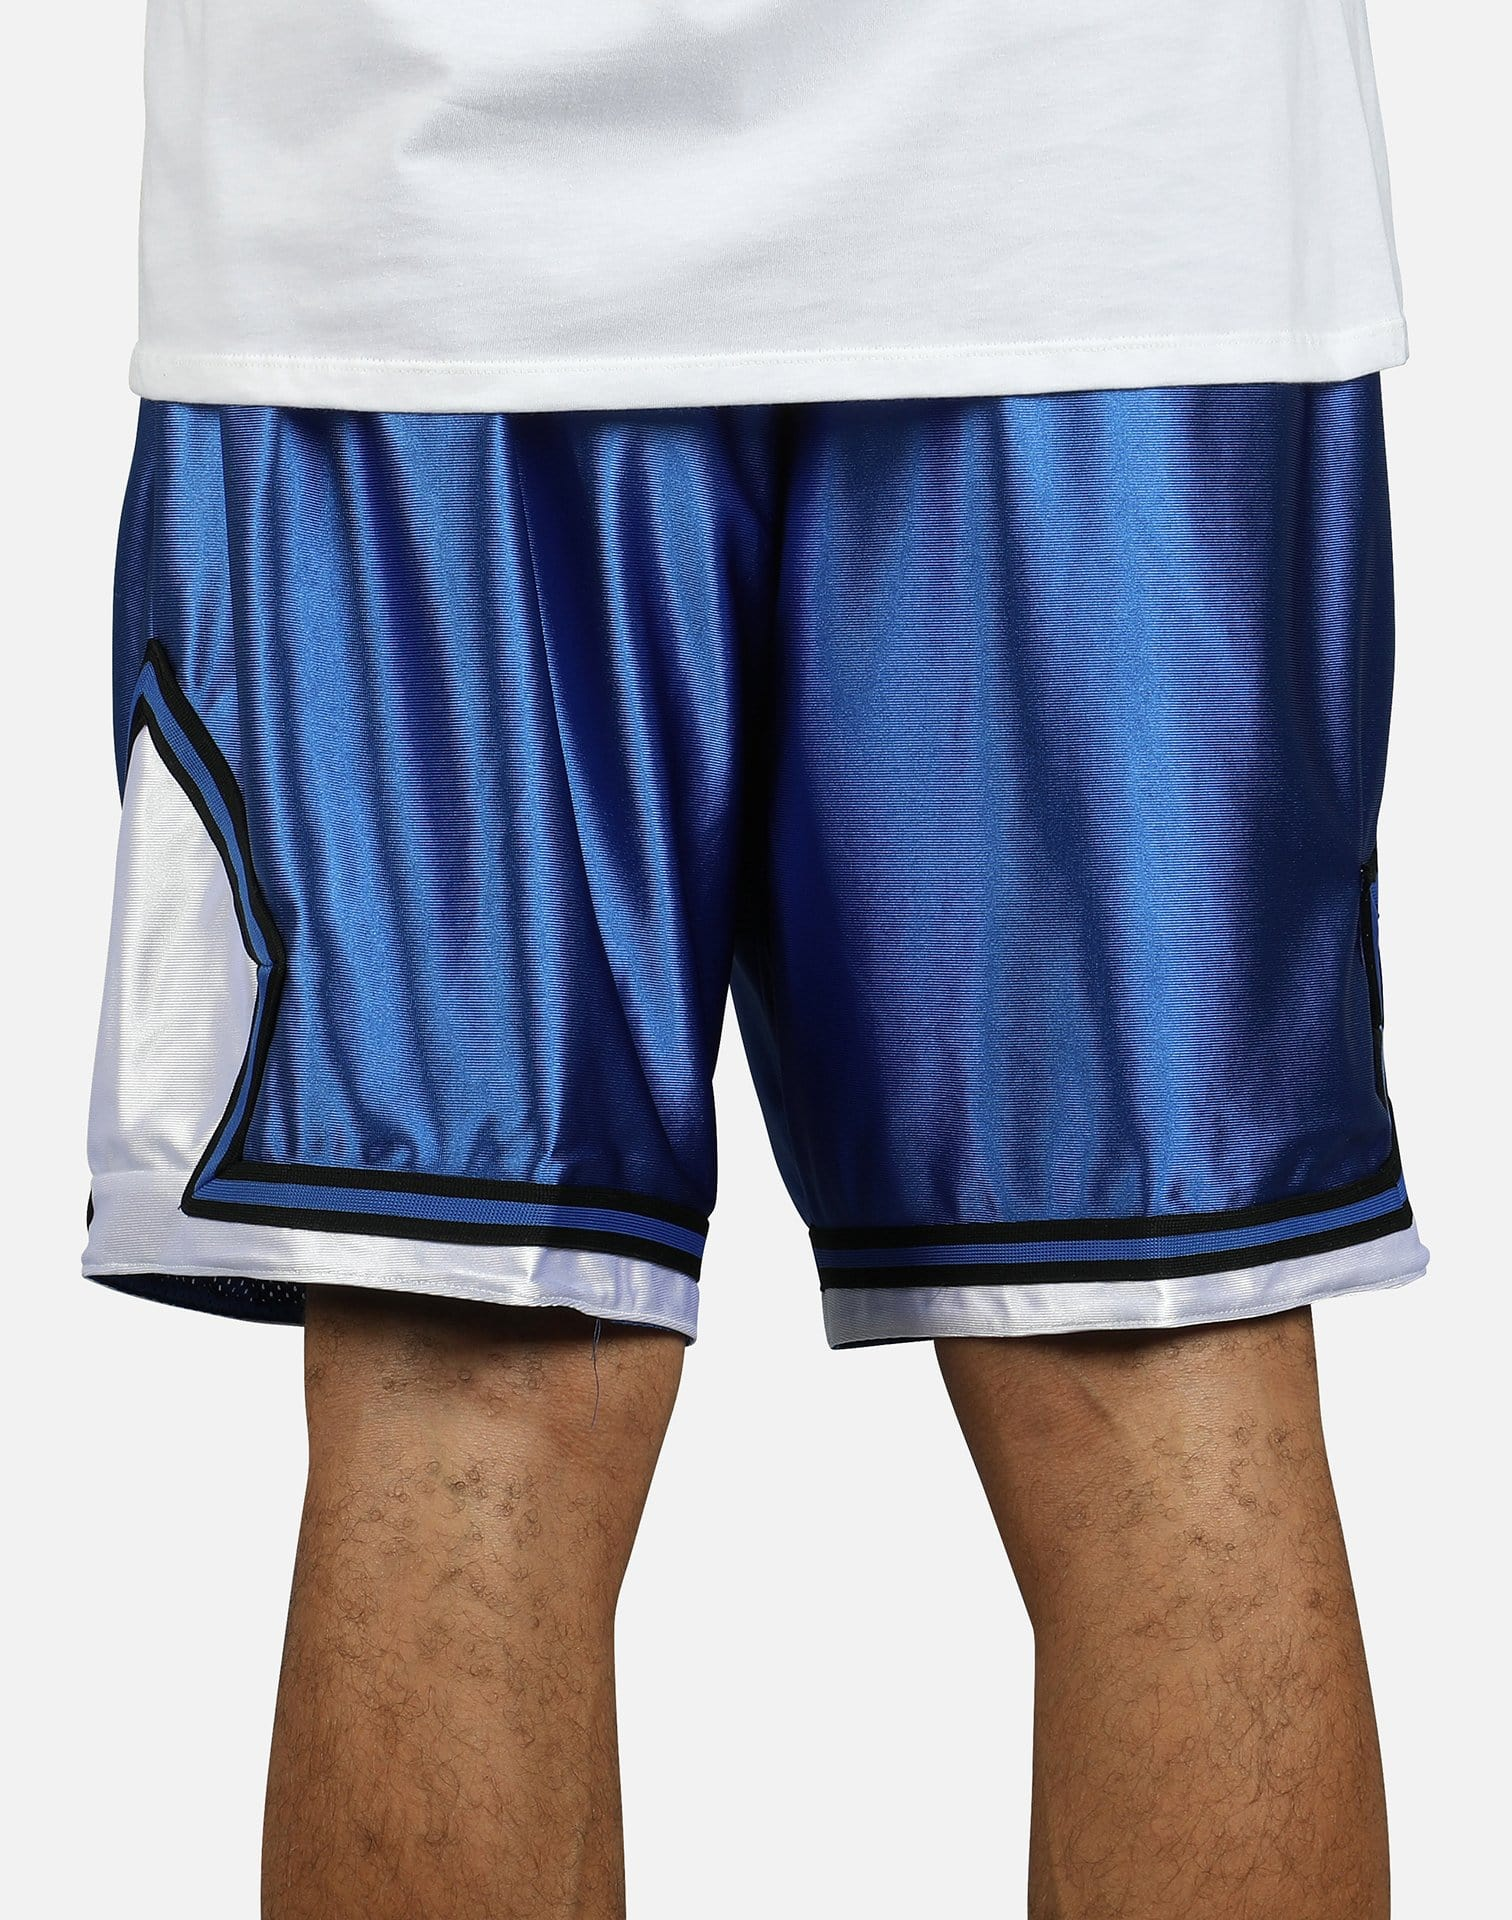 Jordan Men's AJ Retro 10 Mesh Shorts